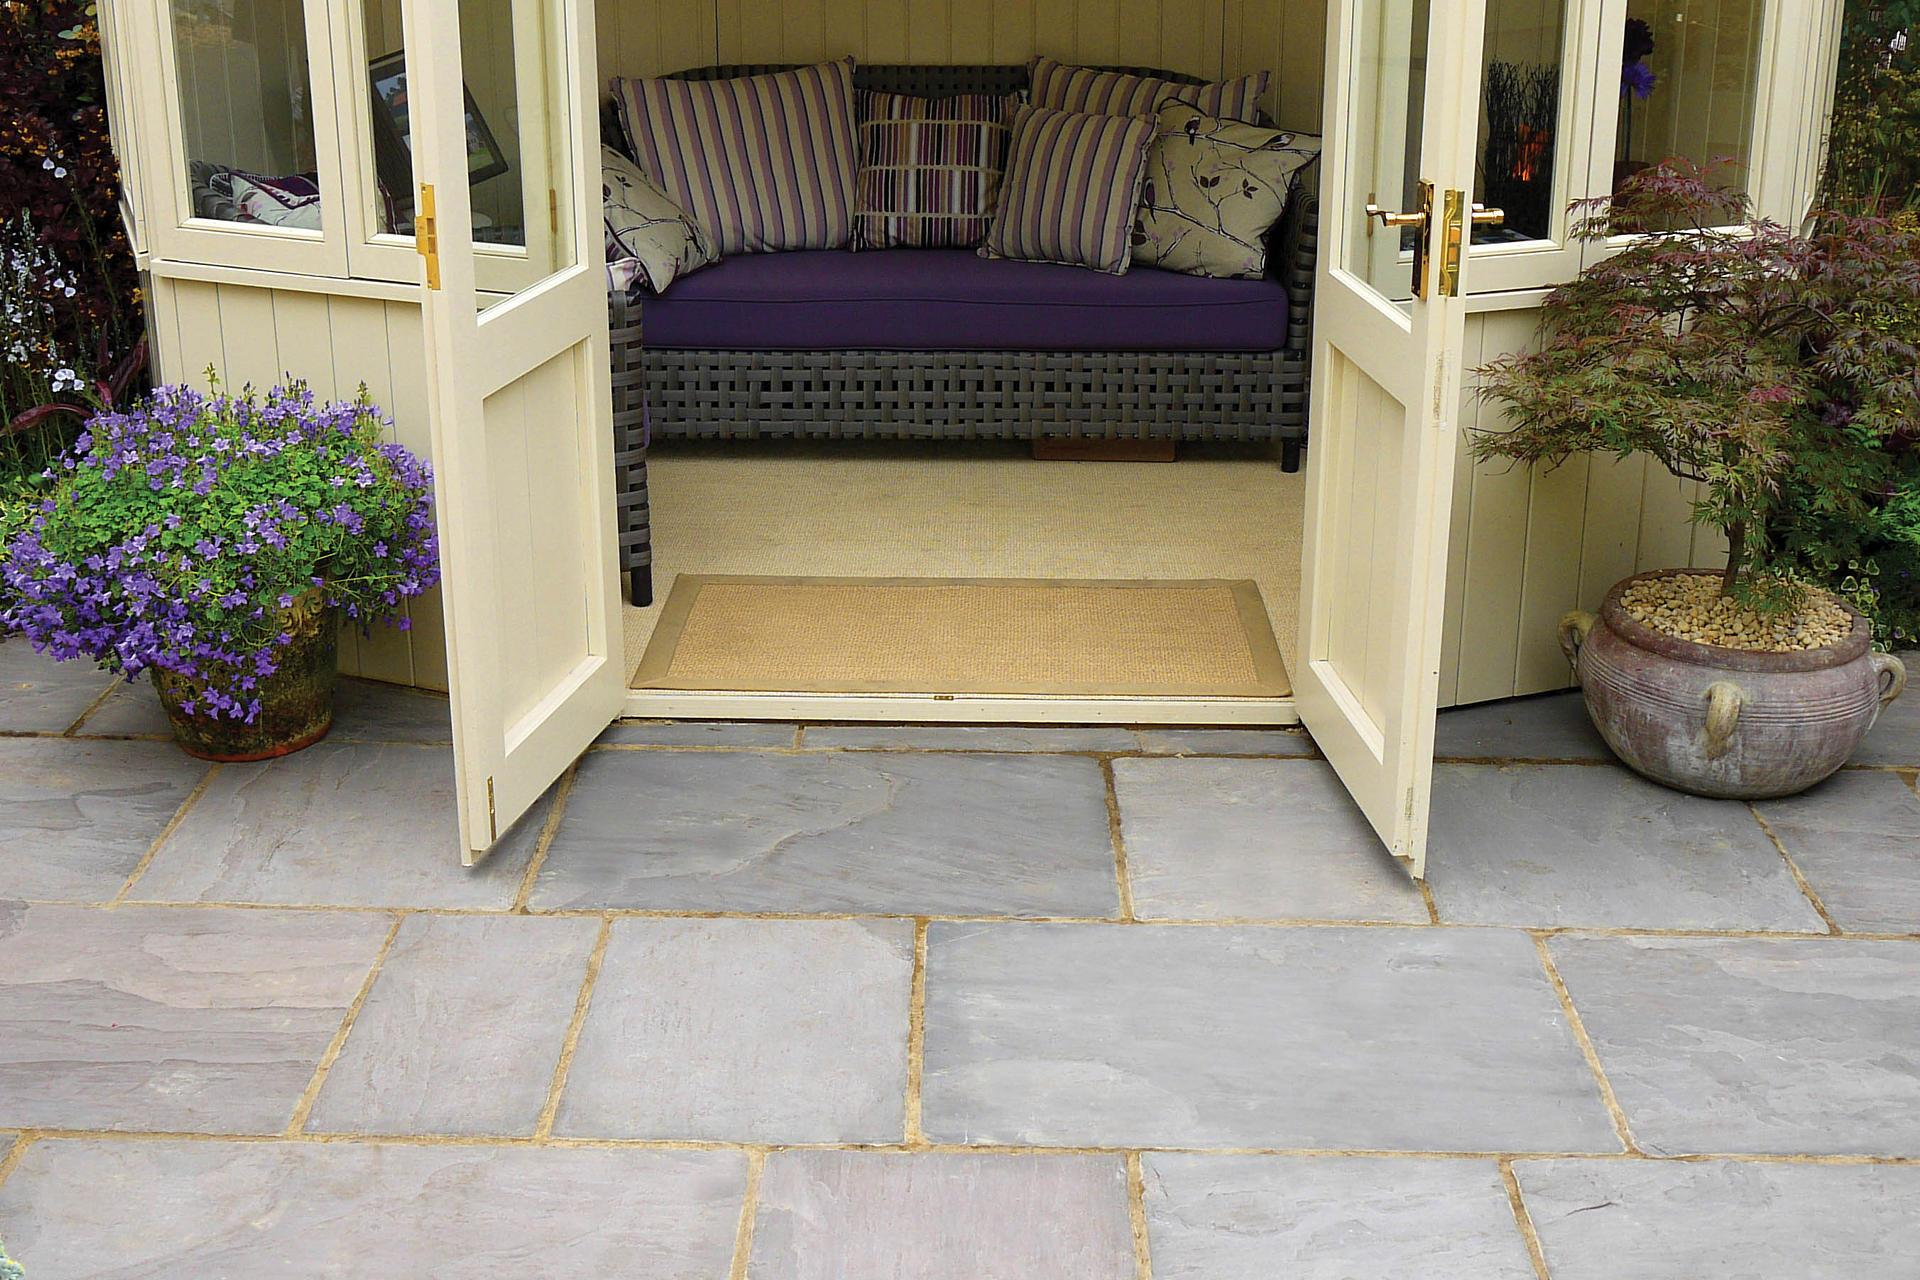 Digby Stone Paving/Patio Slabs #4